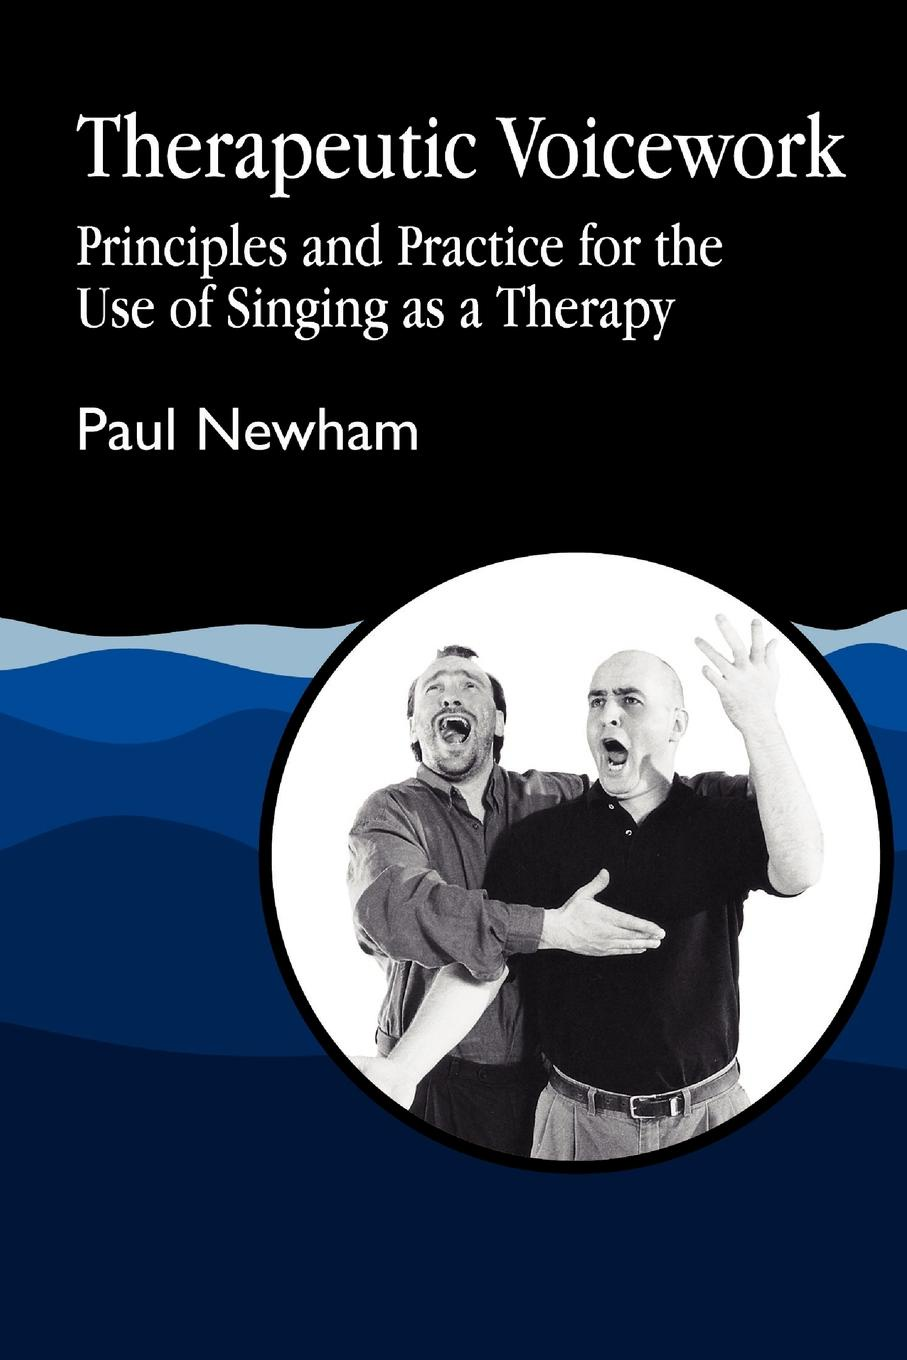 Paul Newham Therapeutic Voicework. The Therapeutic Use of Singing and Vocal Sound reichert janice m handbook of therapeutic antibodies